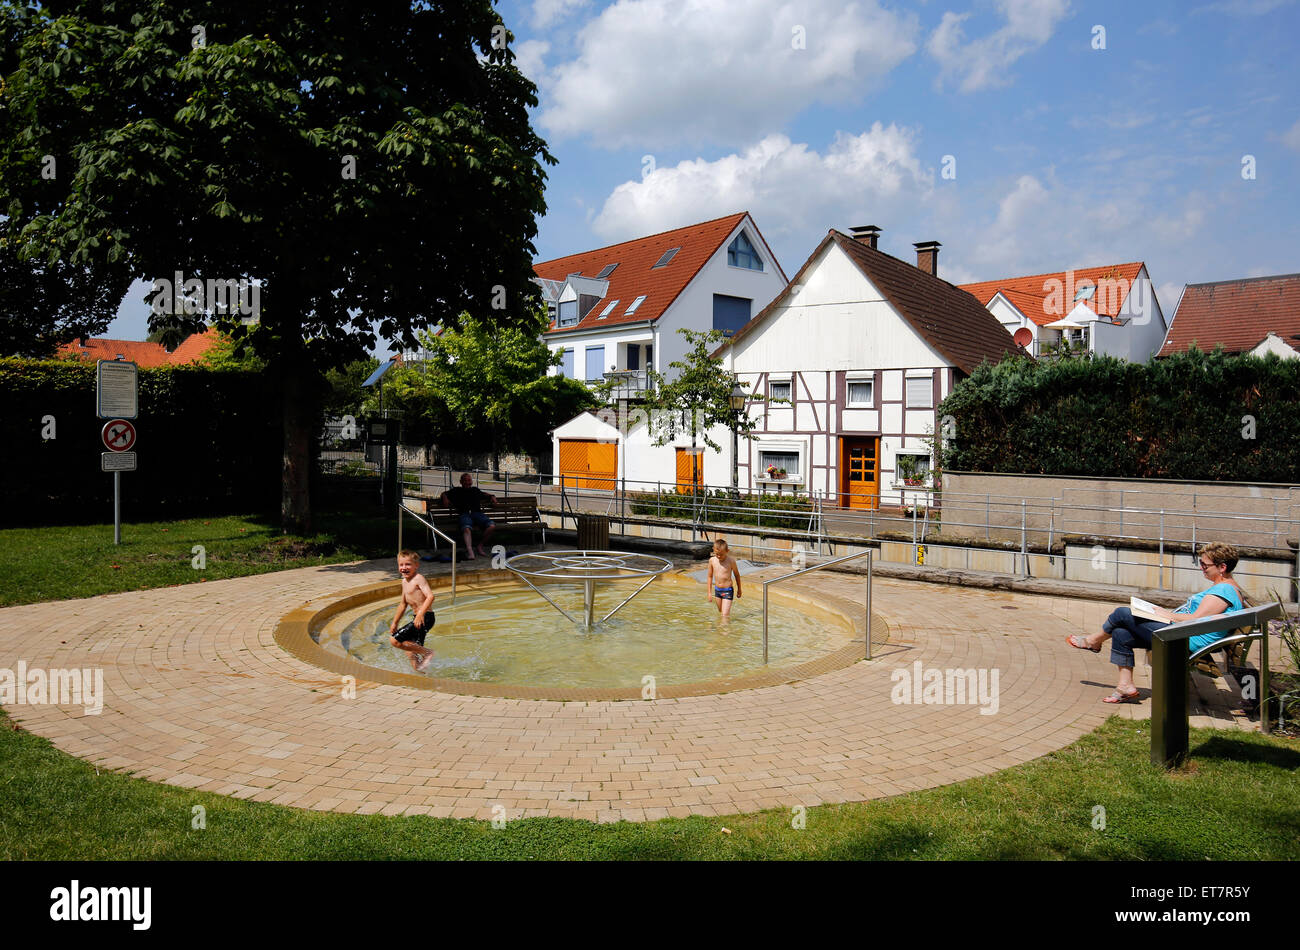 Bad Lippspringe Bad Lippspringe Germany A Playground In The Park On The